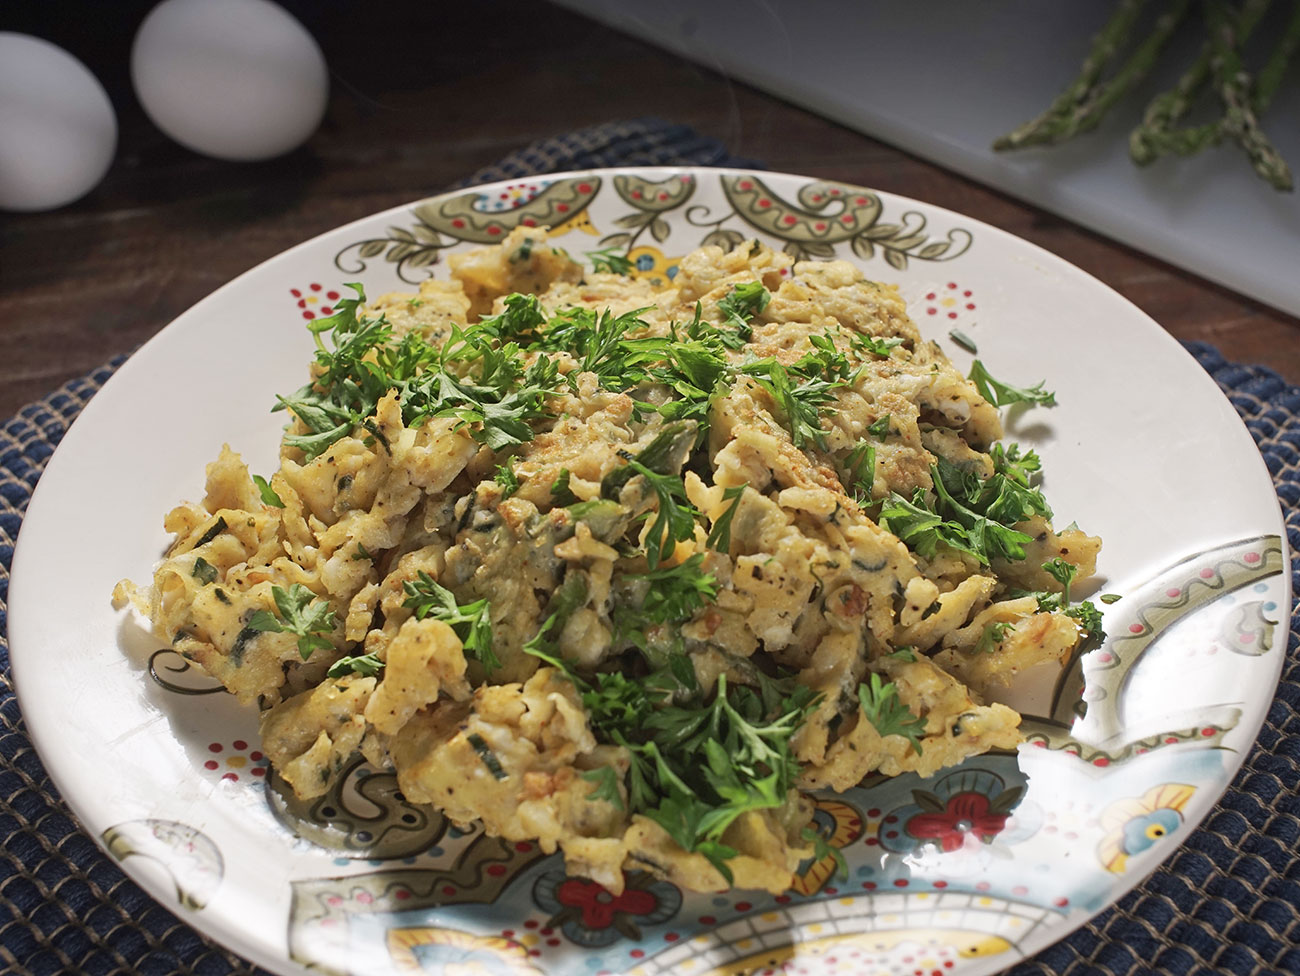 eggs scrambled with asparagus and spices, topped with fresh italian parsley